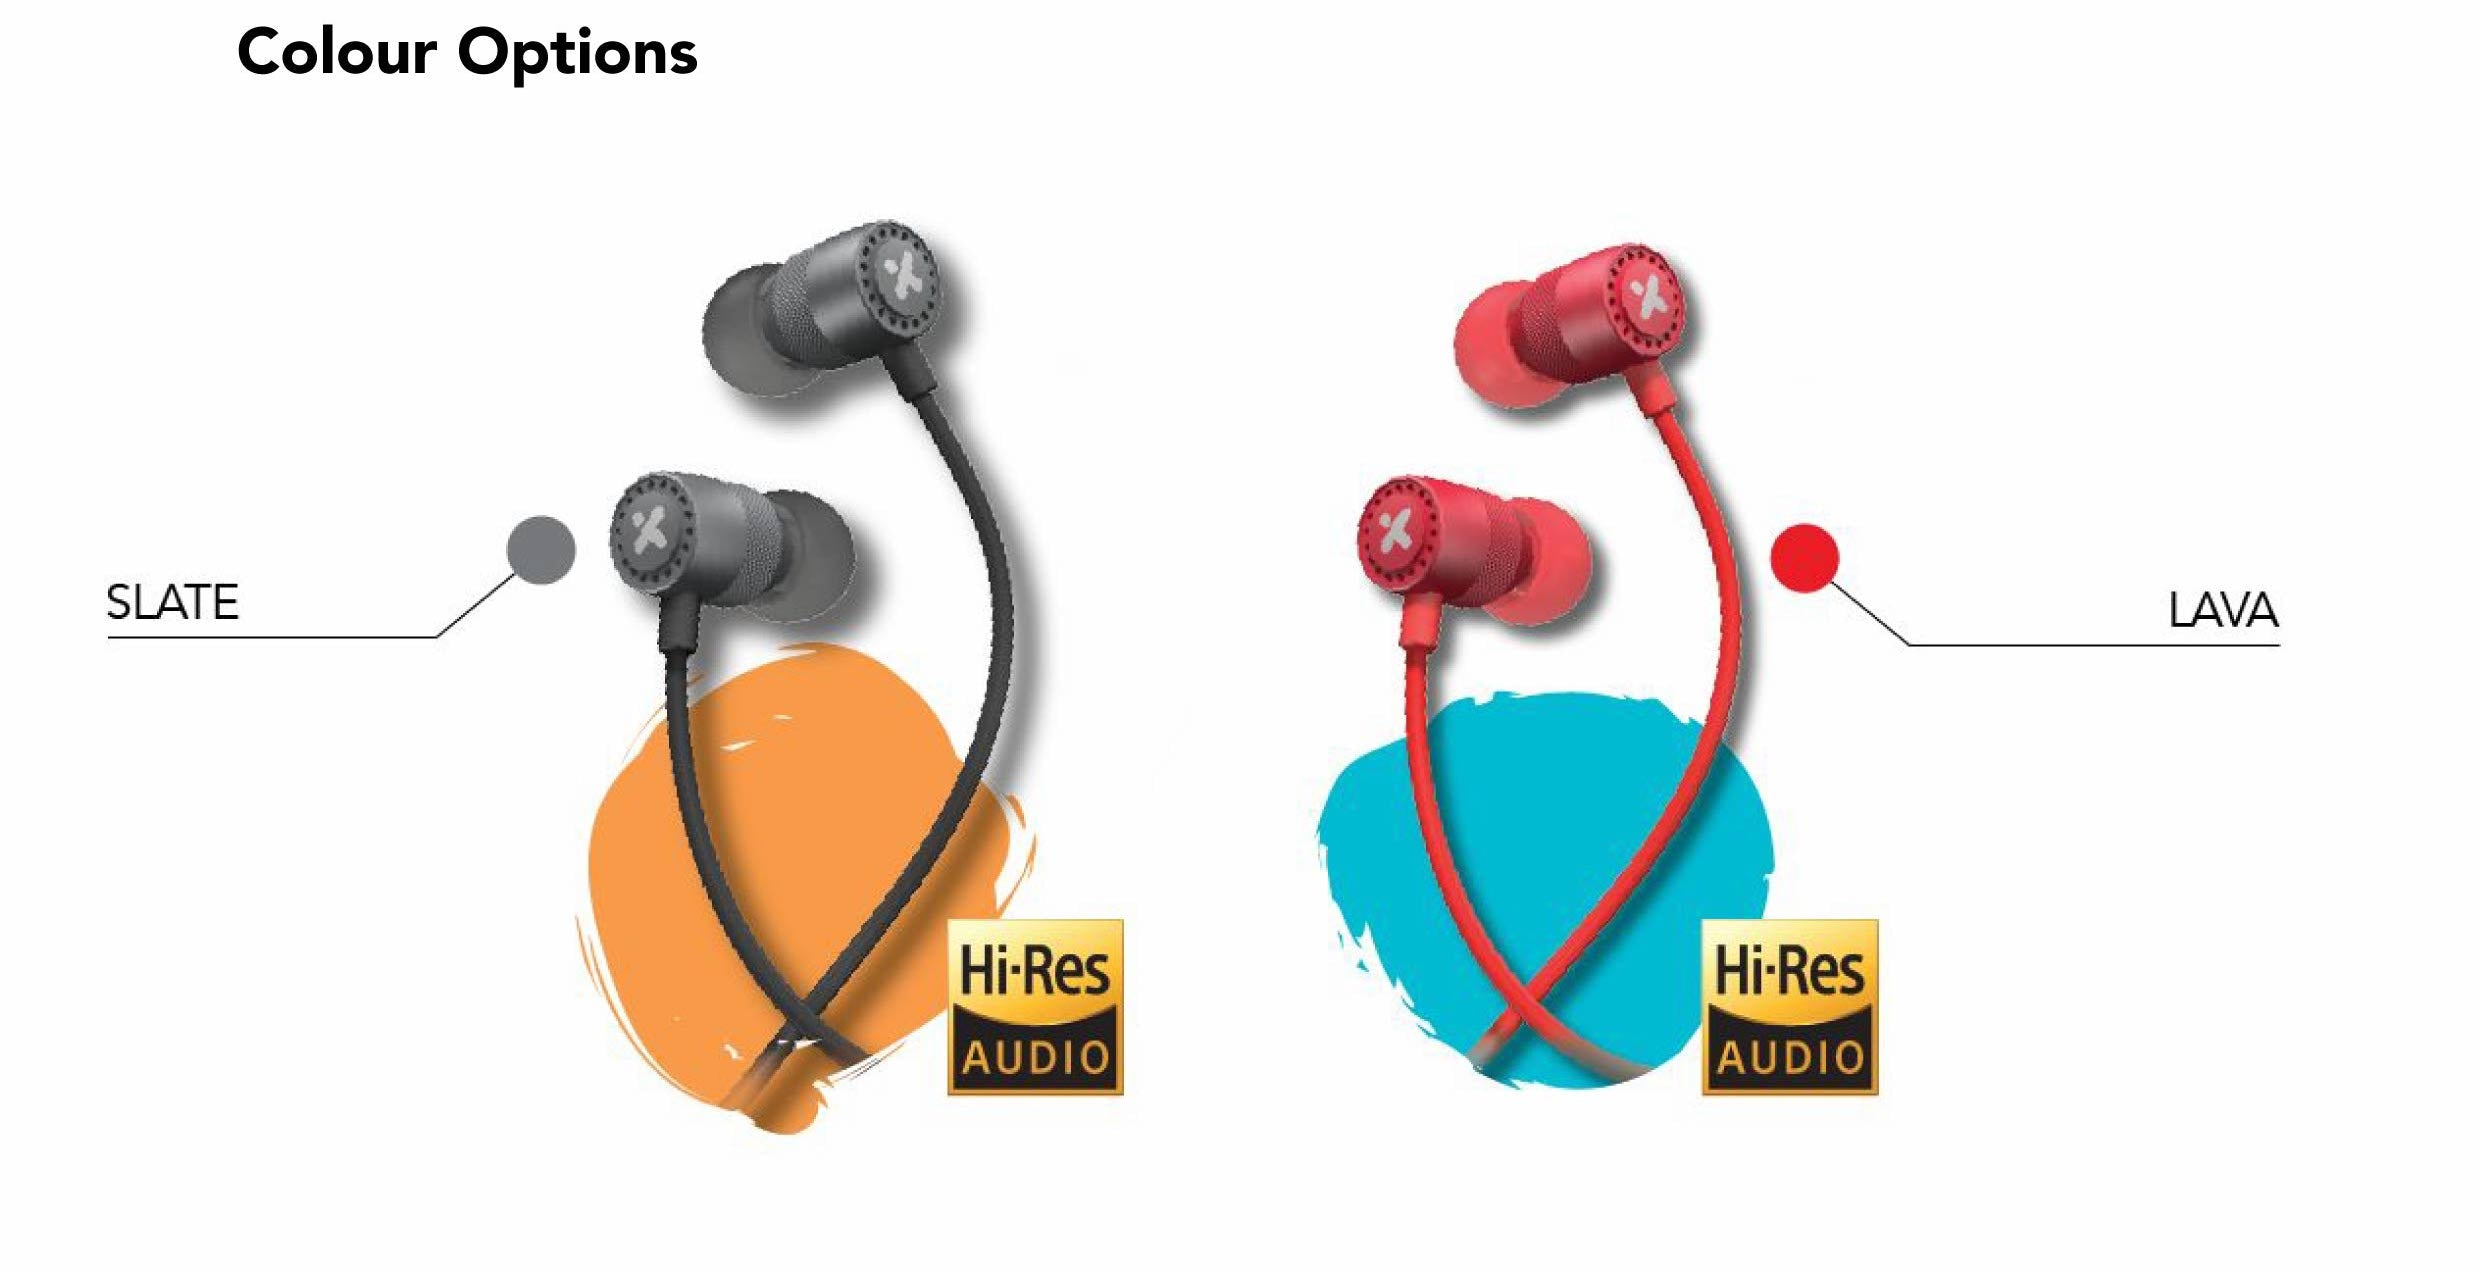 X-mini-Xtlas-Full-Bodied-Wired-Xoundbuds-Hi-Res-Audio-Colour-Option